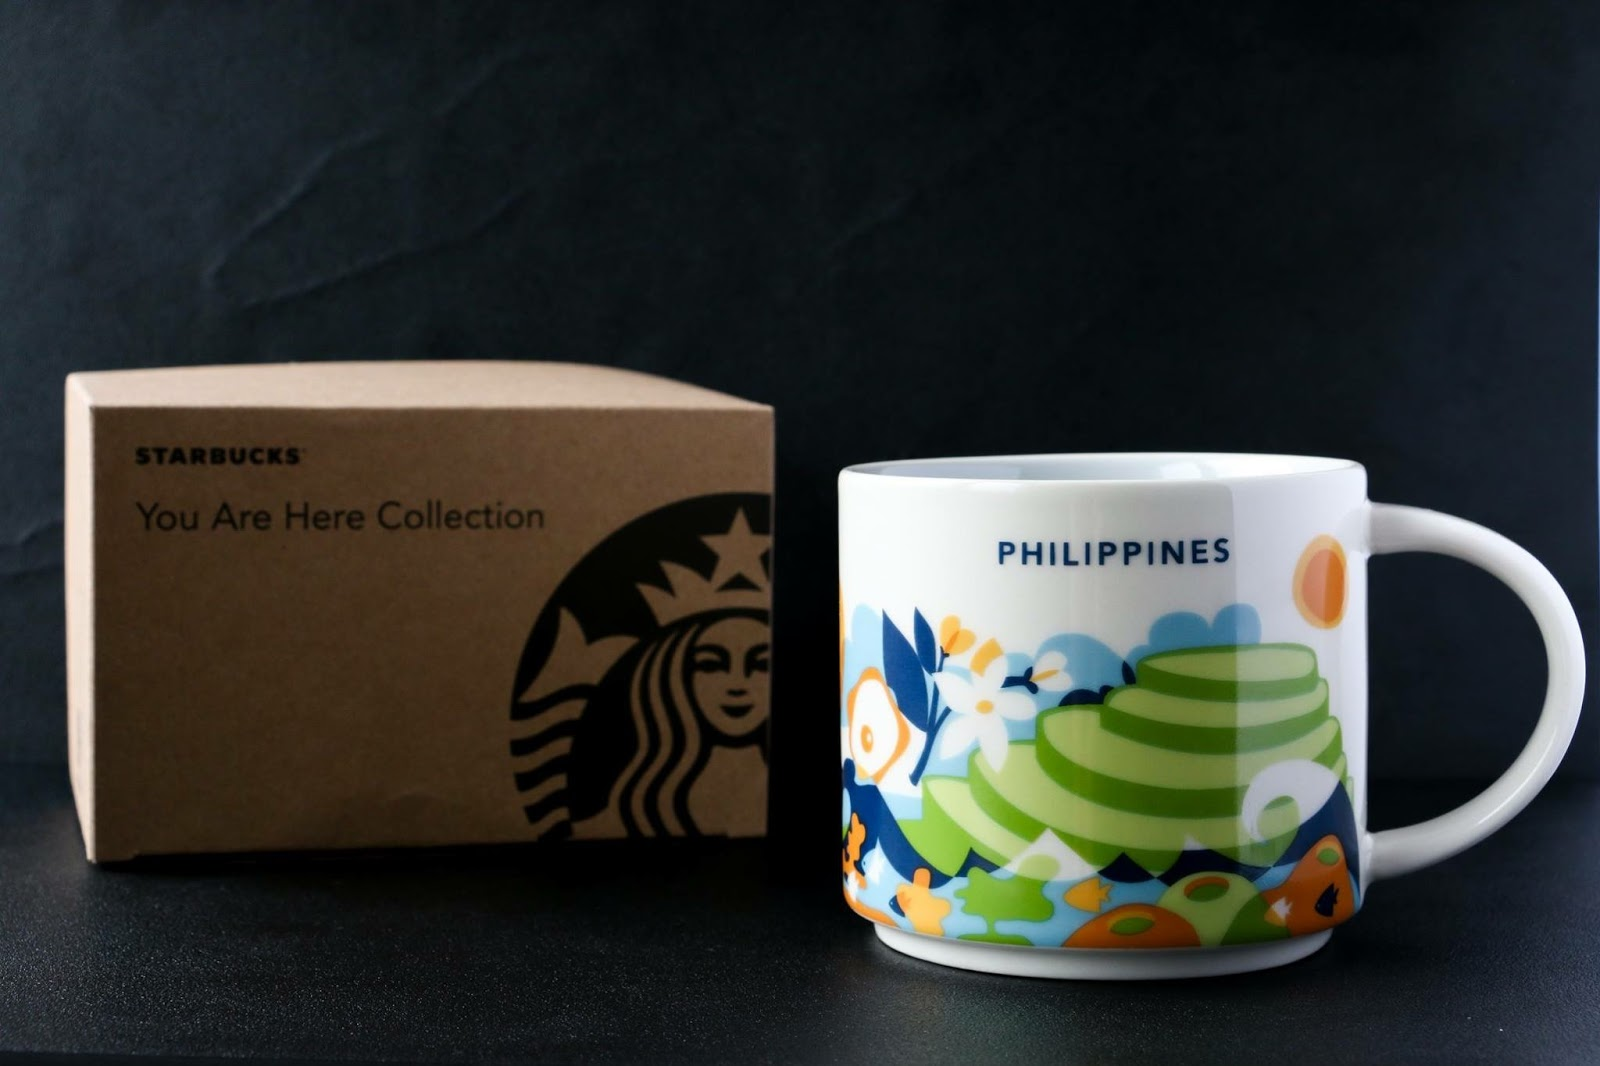 sick mad world no more 2017 starbucks philippines you are here series mug collection batch one. Black Bedroom Furniture Sets. Home Design Ideas